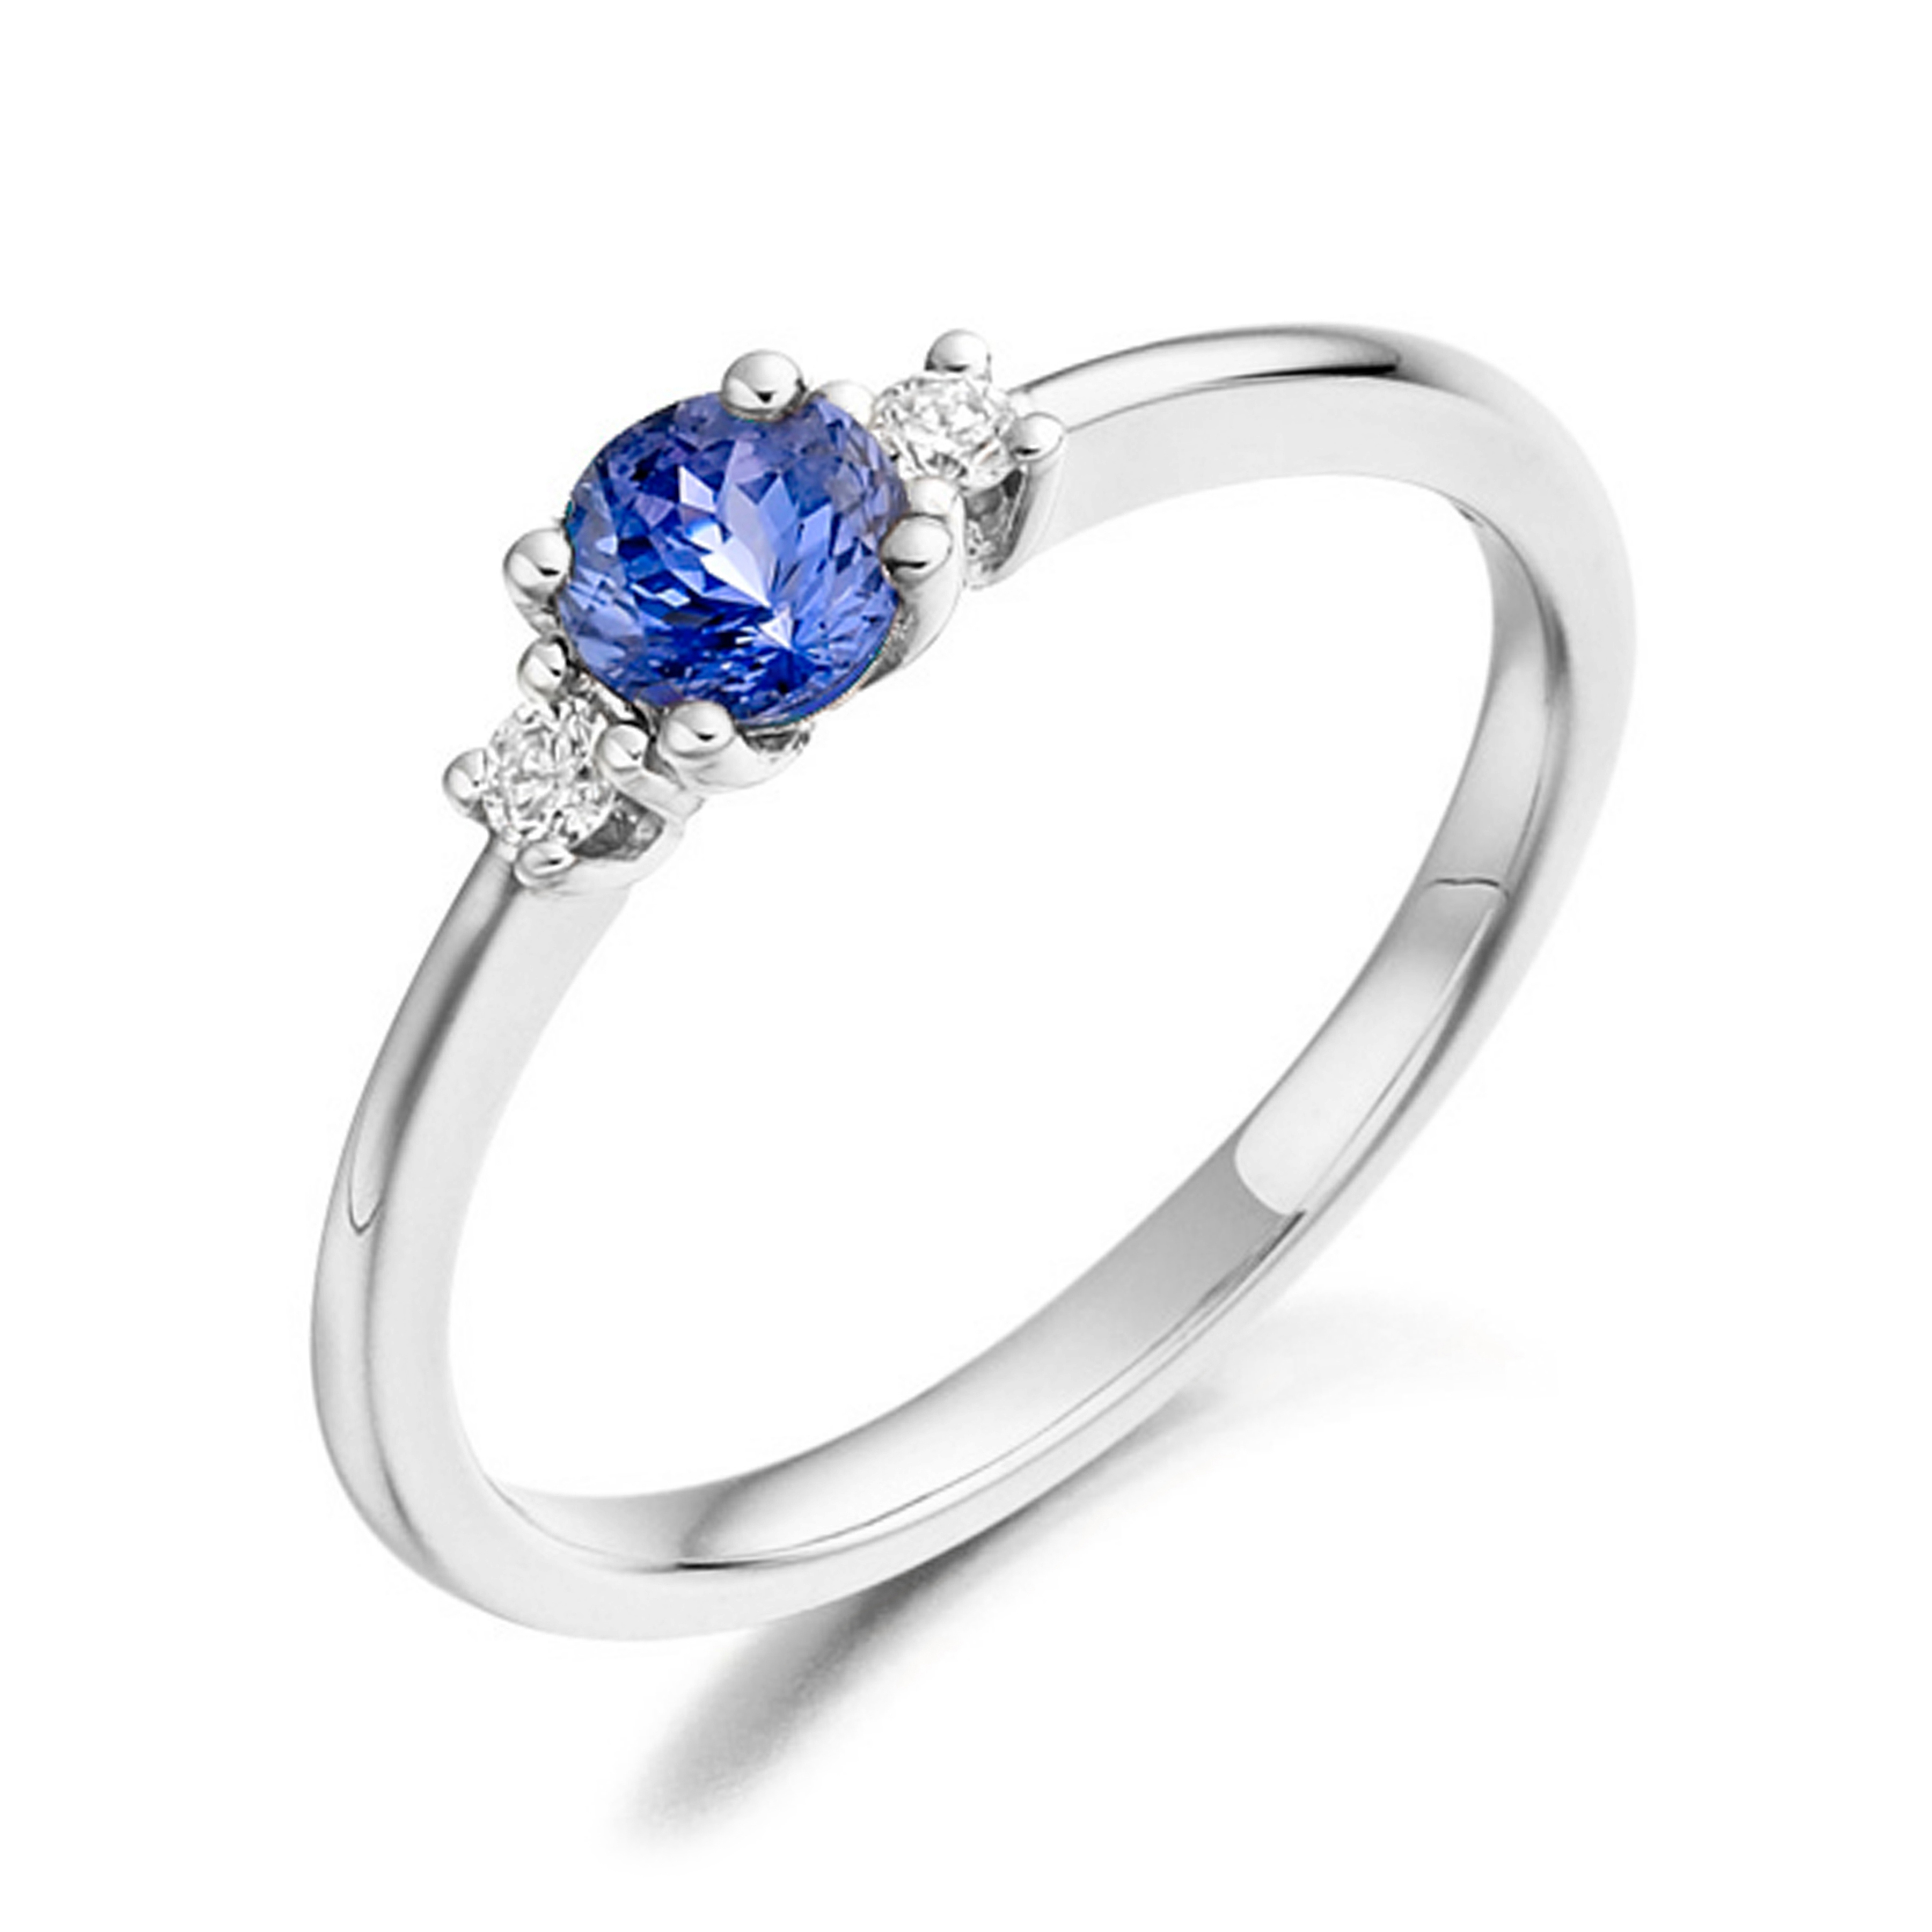 Halo Style Black Diamond Solitaire Pendants Necklace in Miligrain Round Cut